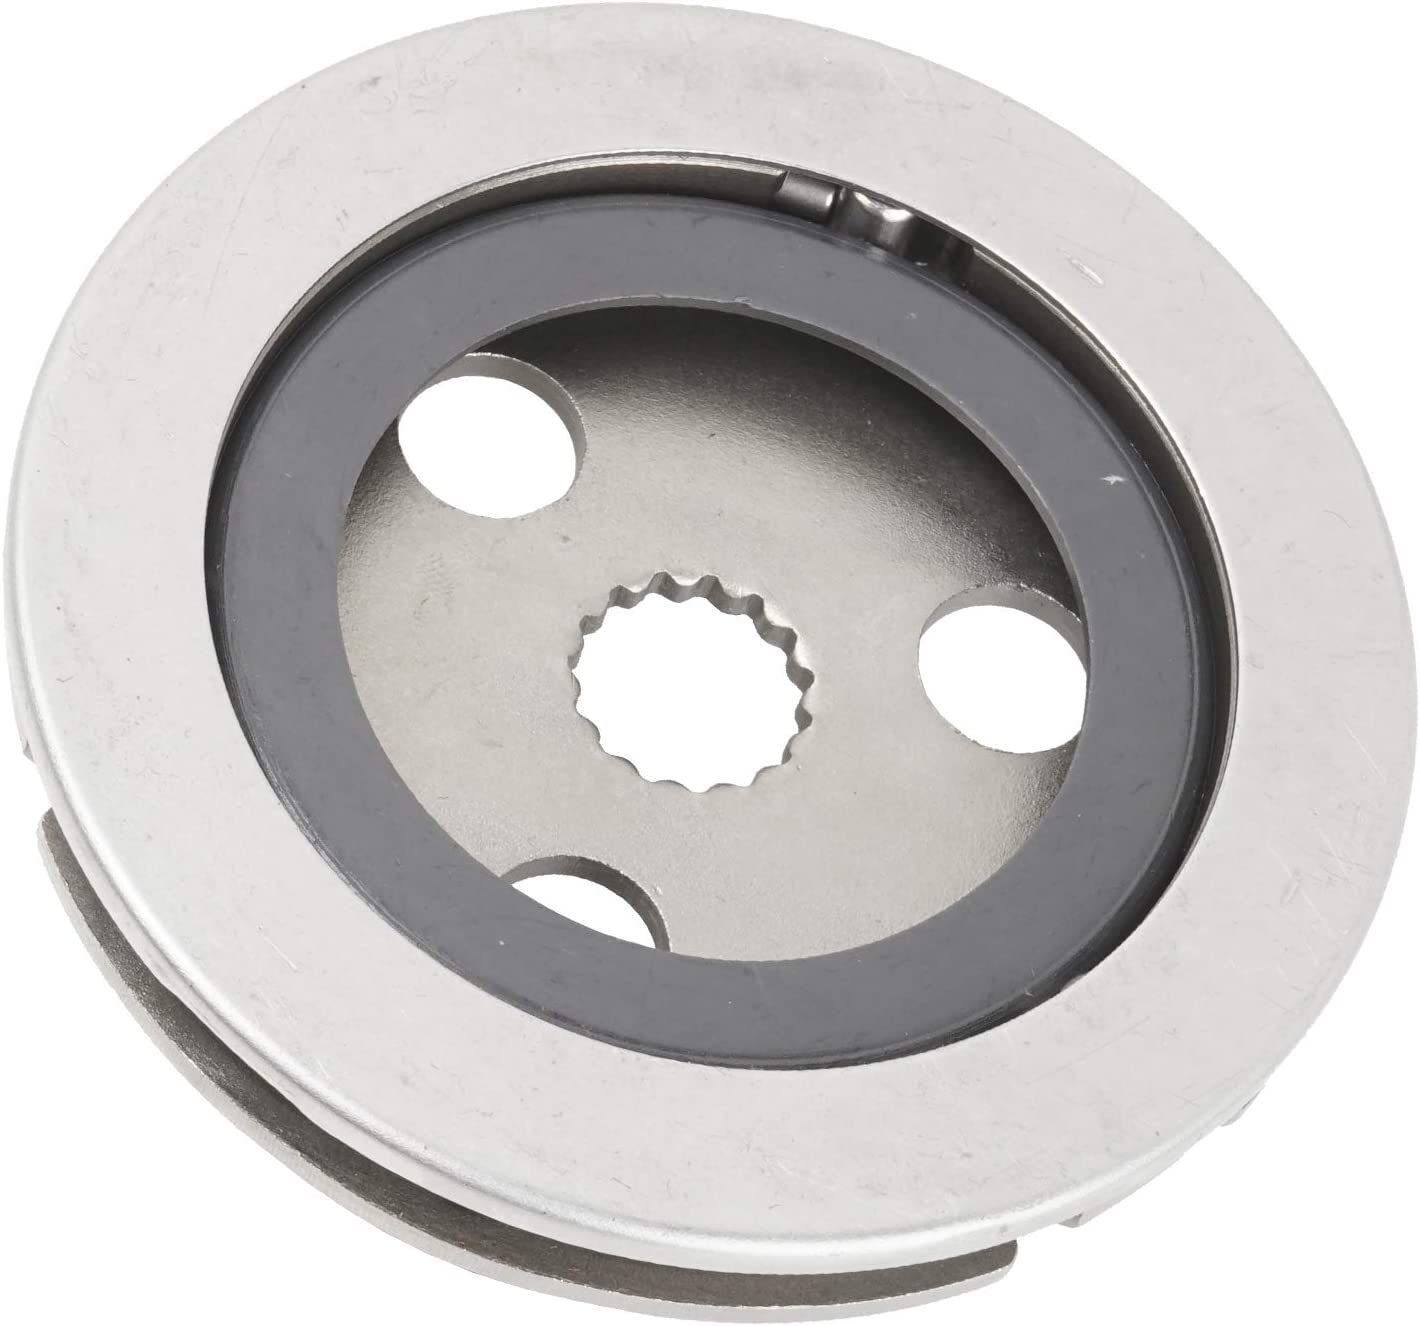 Caltric Starter Clutch National uniform free shipping Sprag Compatible With S Scrambler Max 87% OFF Polaris